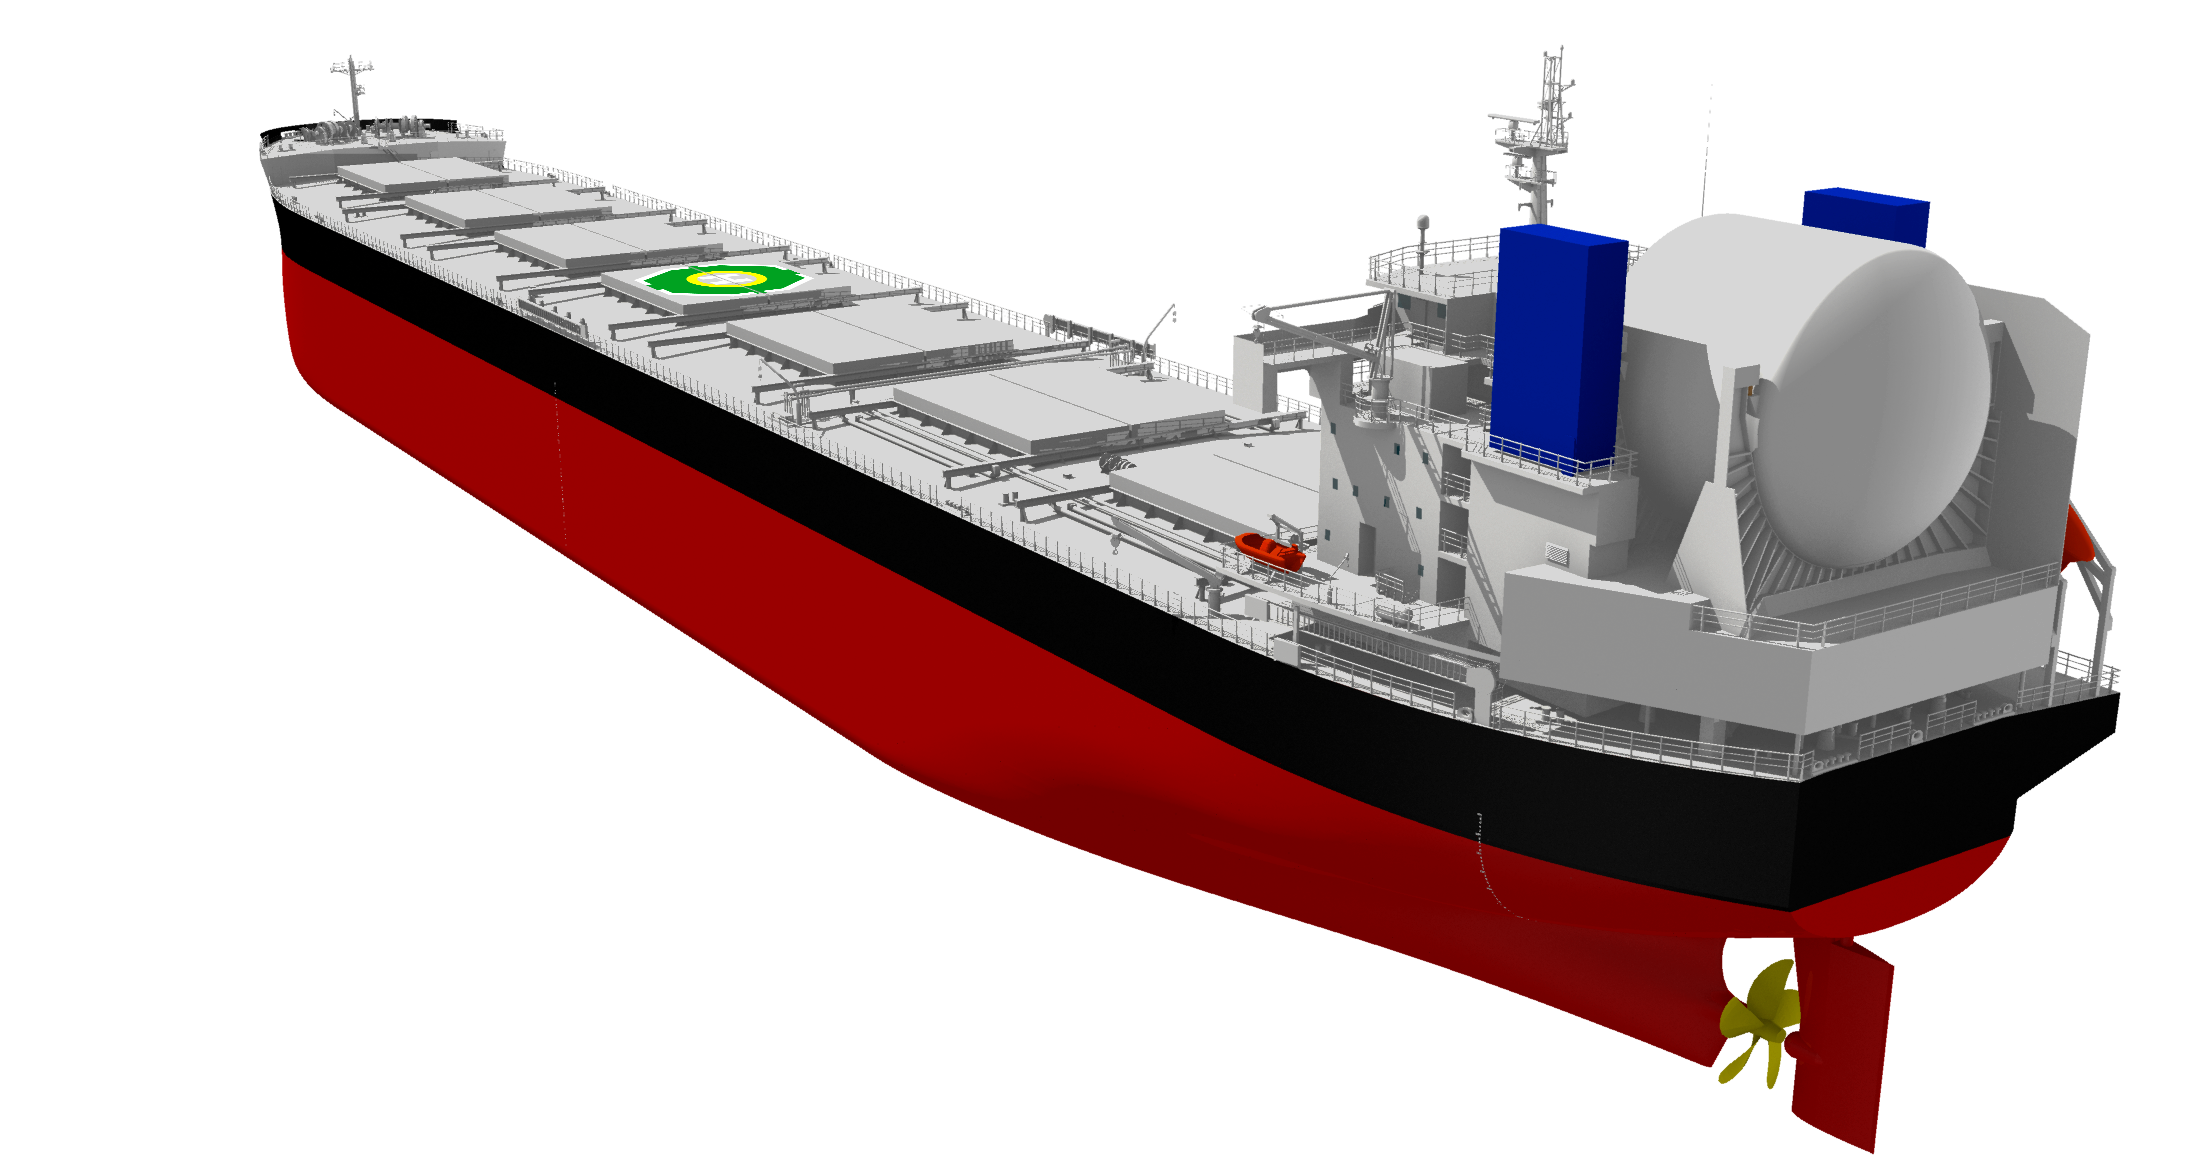 TSUNEISHI SHIPBUILDING receives Approval in Principle for LNG dual-fuel bulk carrier KAMSARMAX GF: CO₂ reduced by 40% or more compared to EEDI reference line